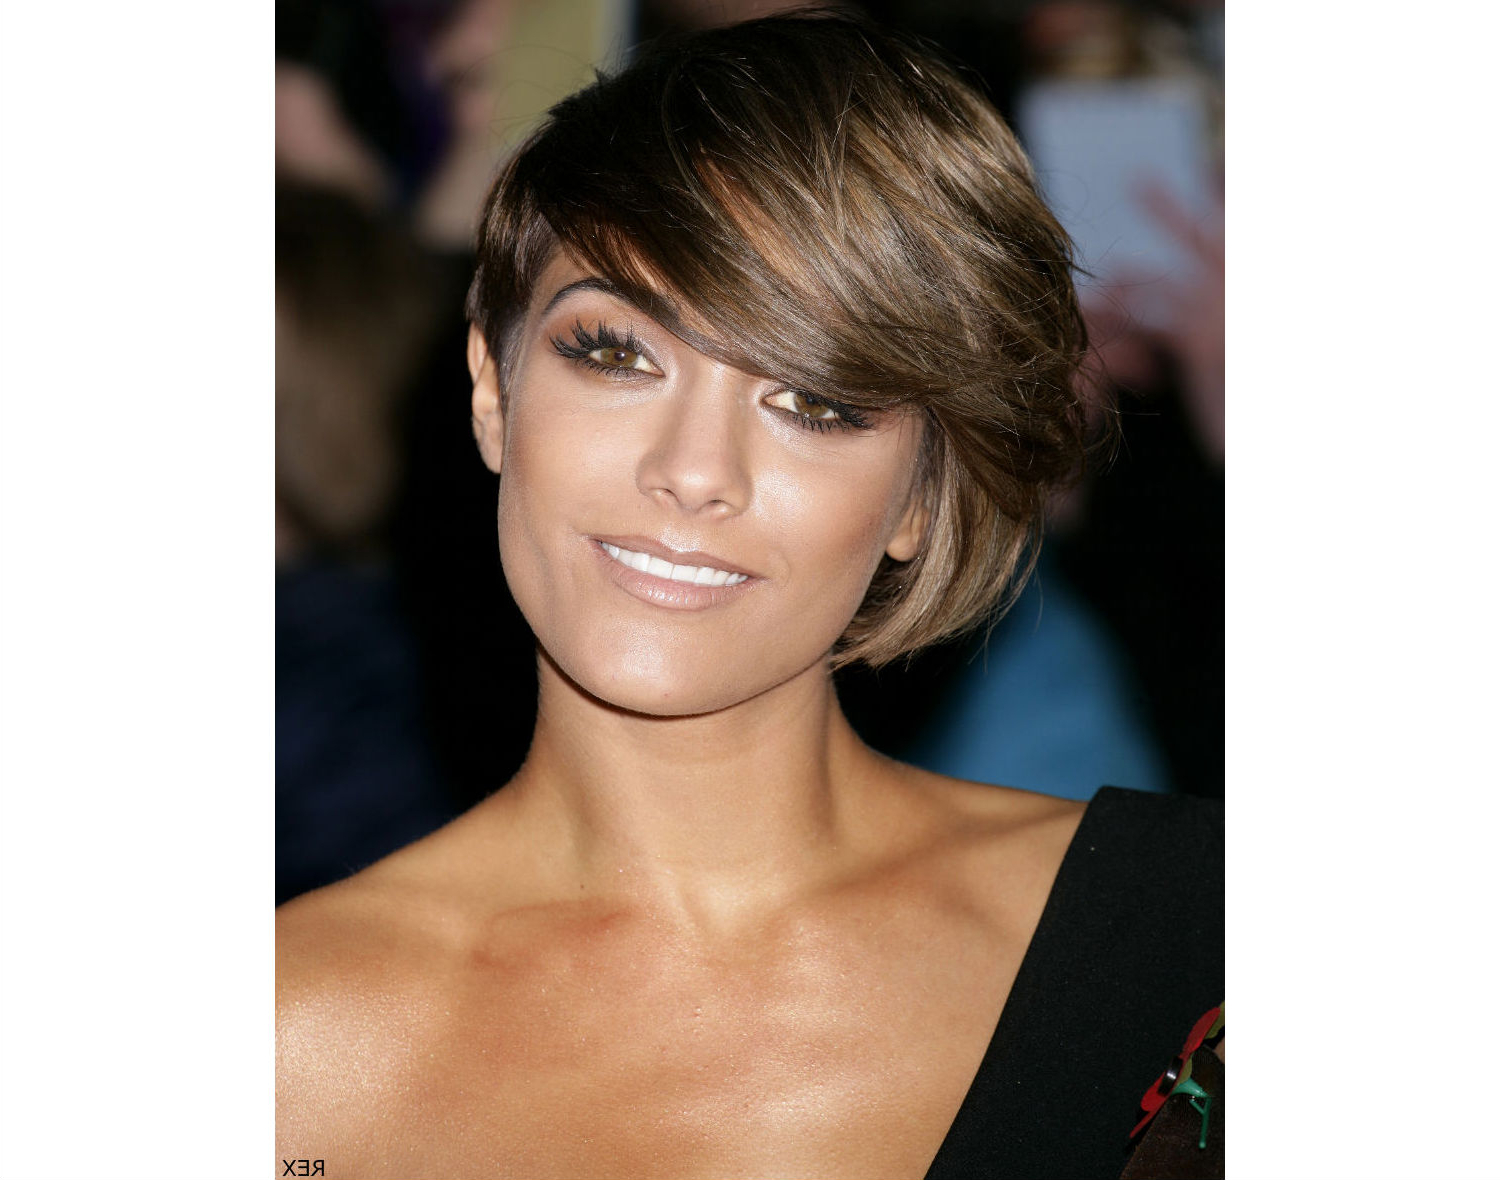 Short Hairstyle For Thin Straight Hair Regarding Cute Short Haircuts For Thin Straight Hair (View 23 of 25)